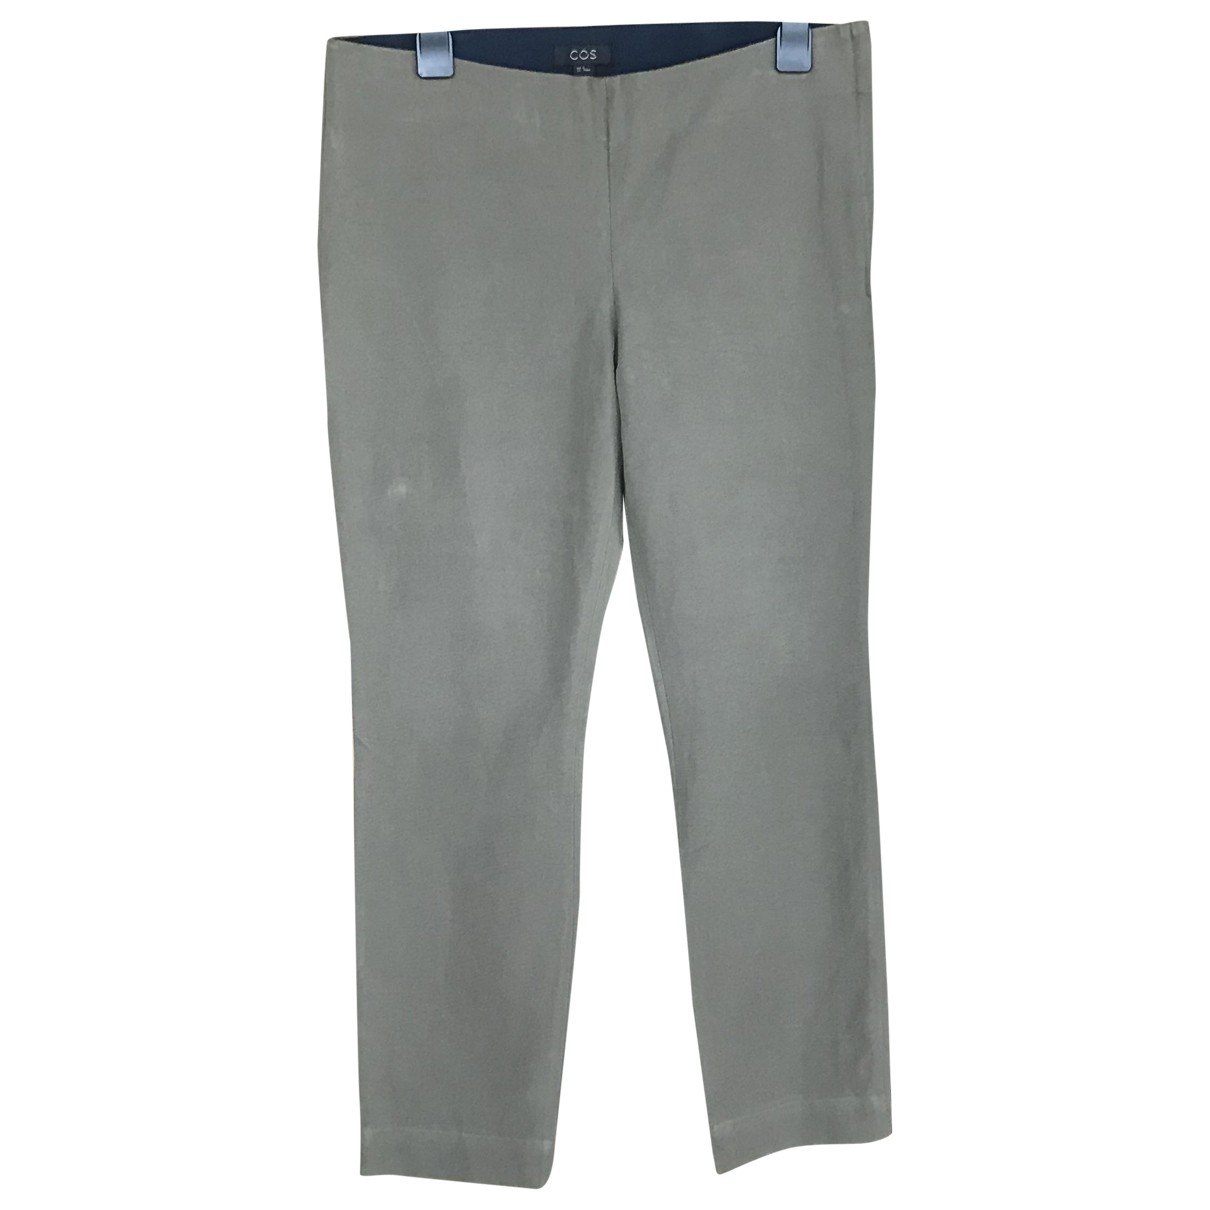 Cos \N Cotton Trousers for Women L International